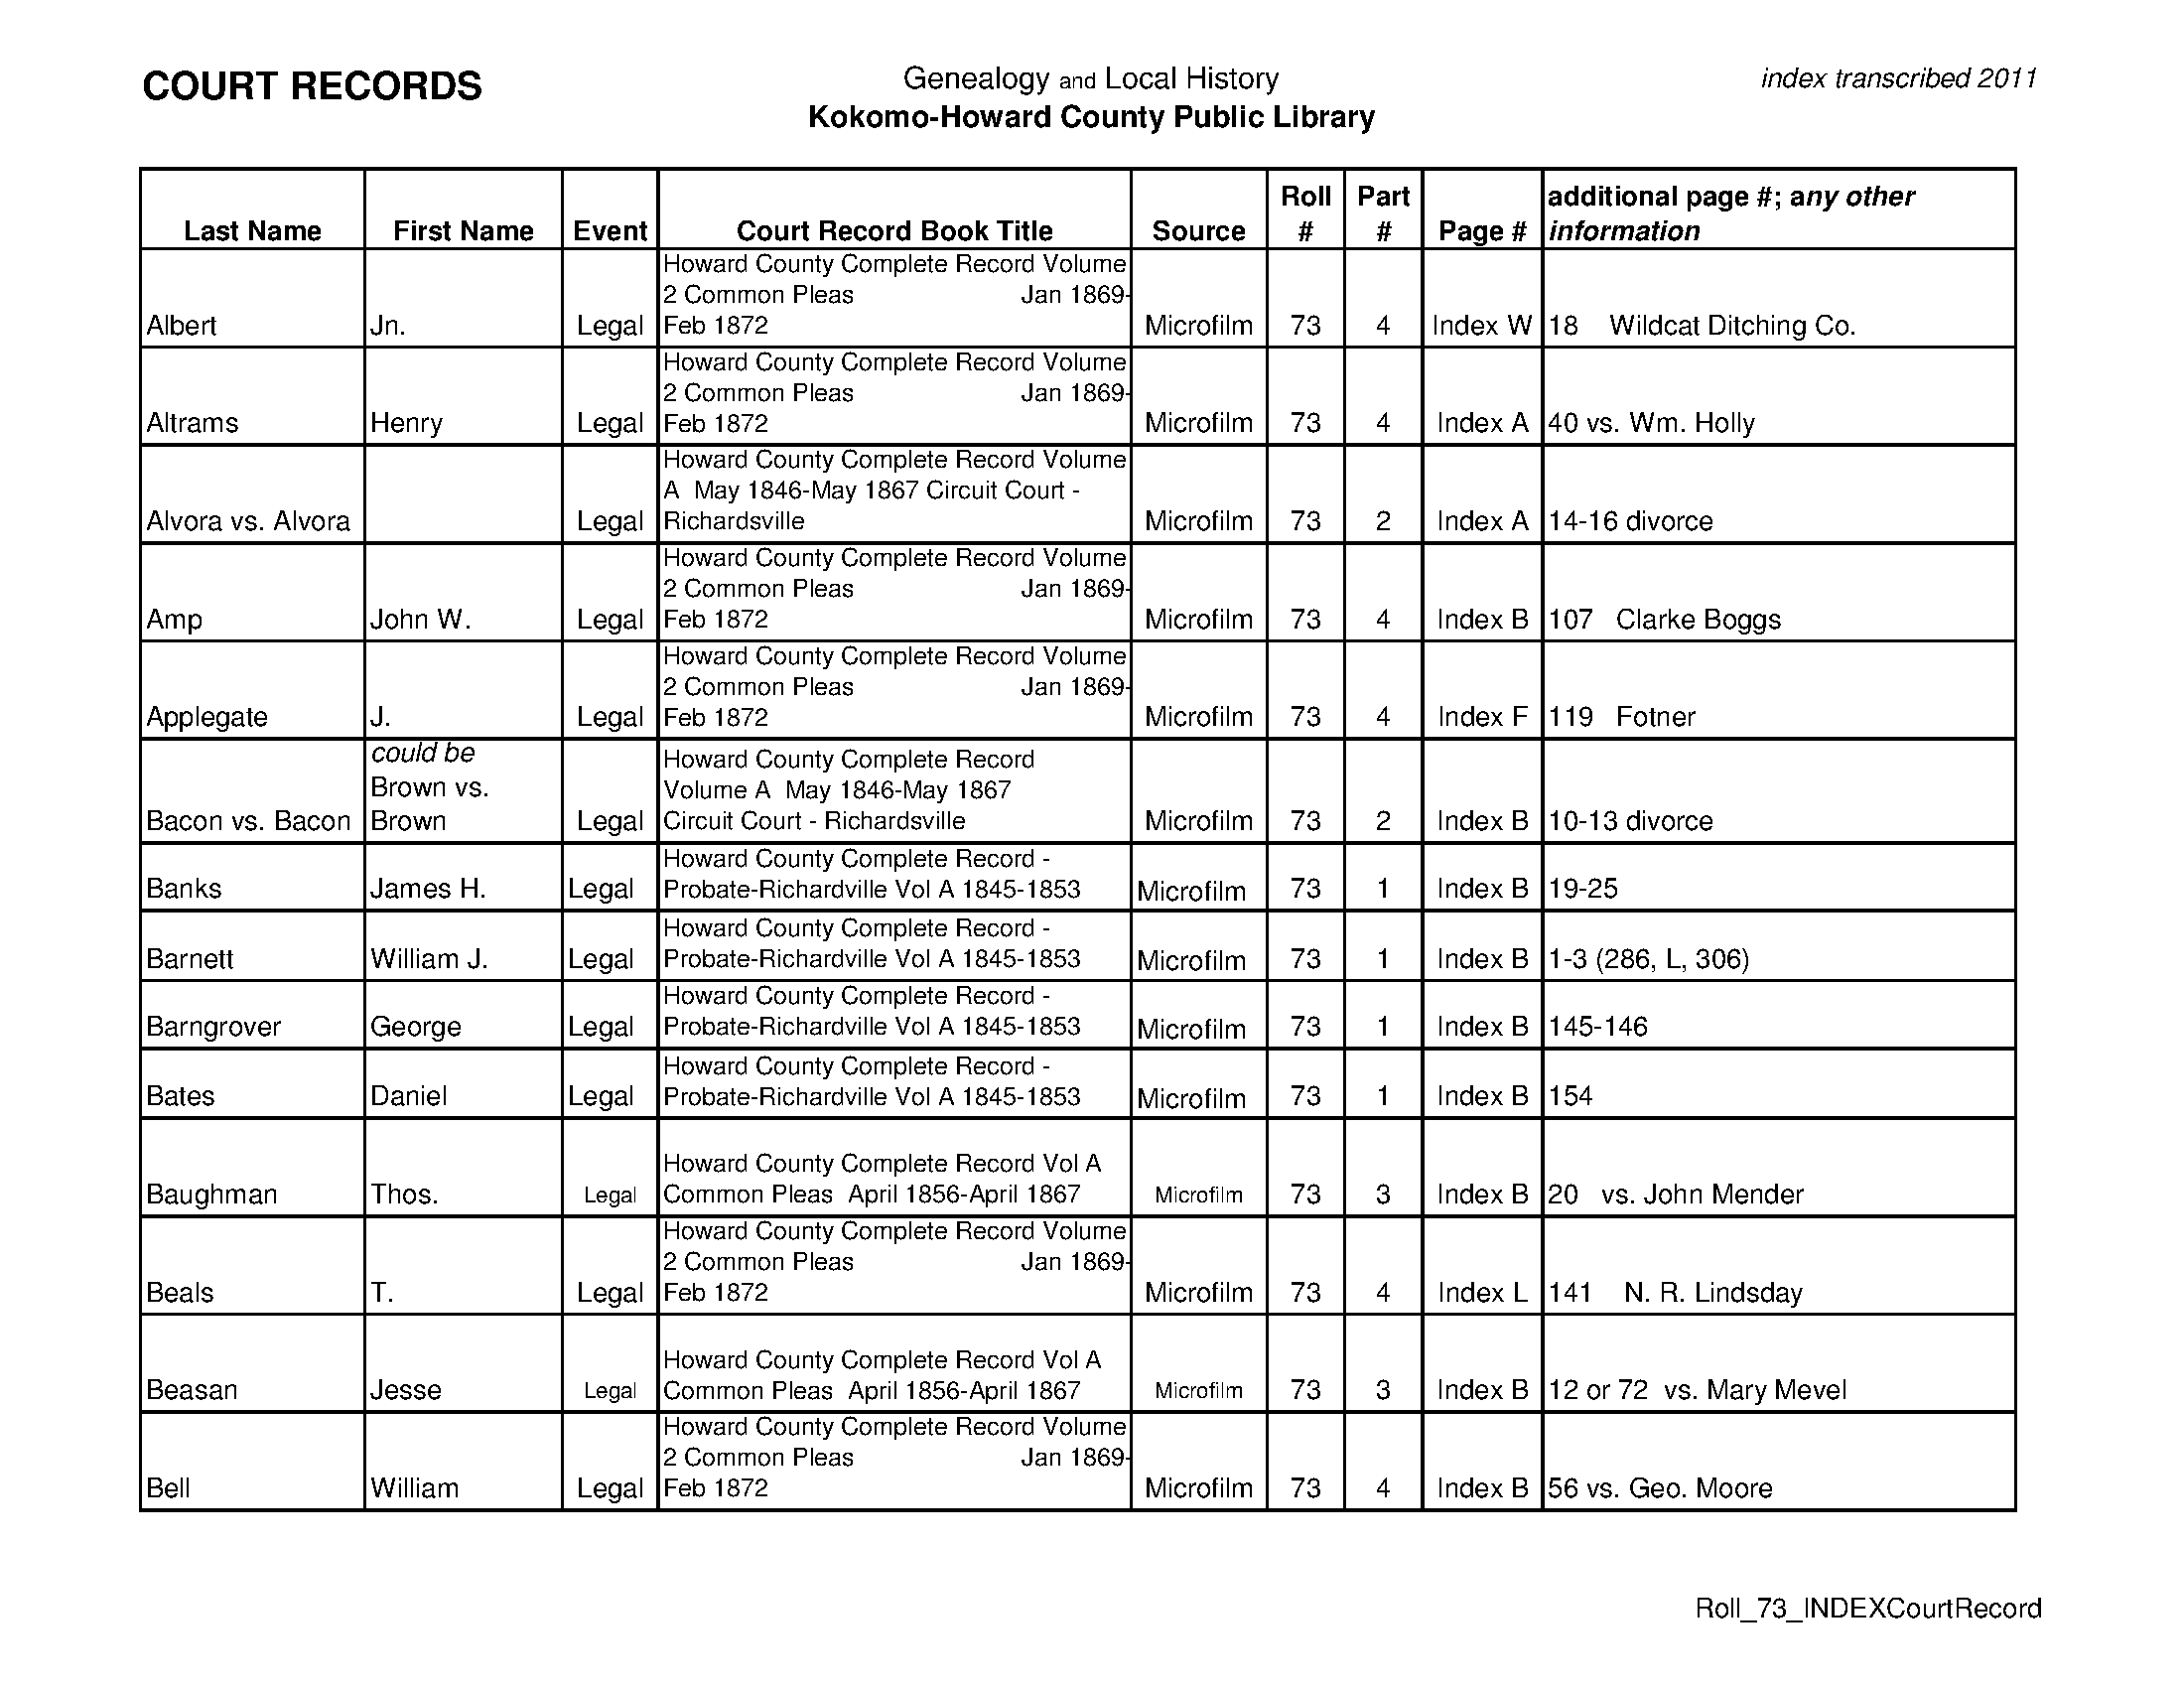 Roll 73: Howard County Complete Records, Probate, Circuit